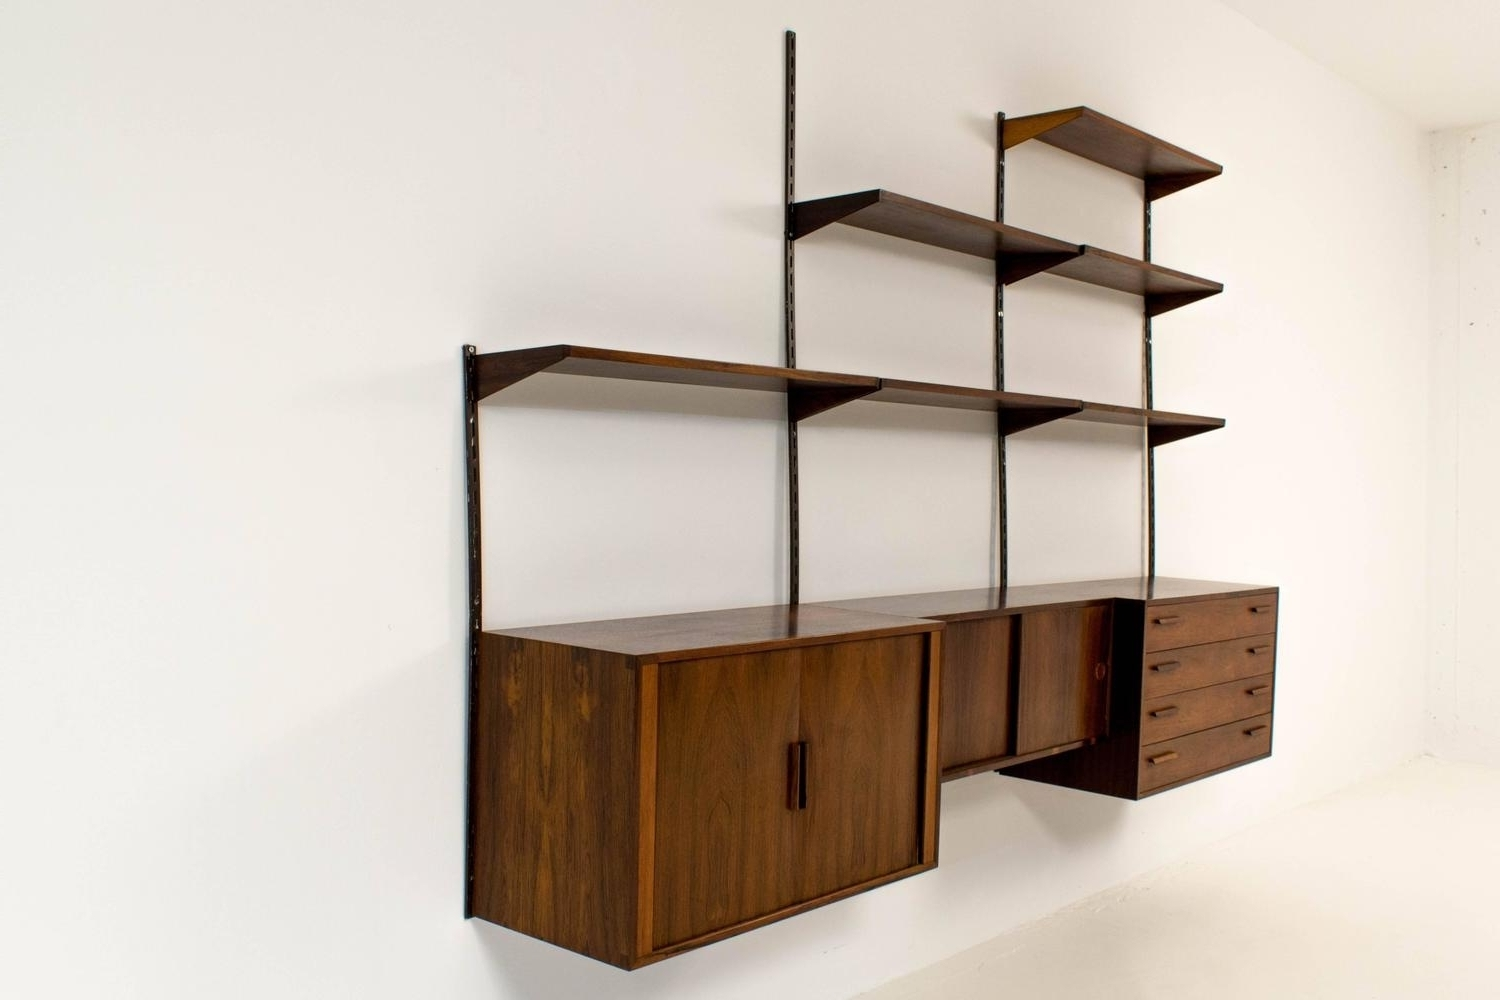 Most Recent Wall Mounted Metal Shelving System Throughout Wall Shelving Units (View 4 of 15)